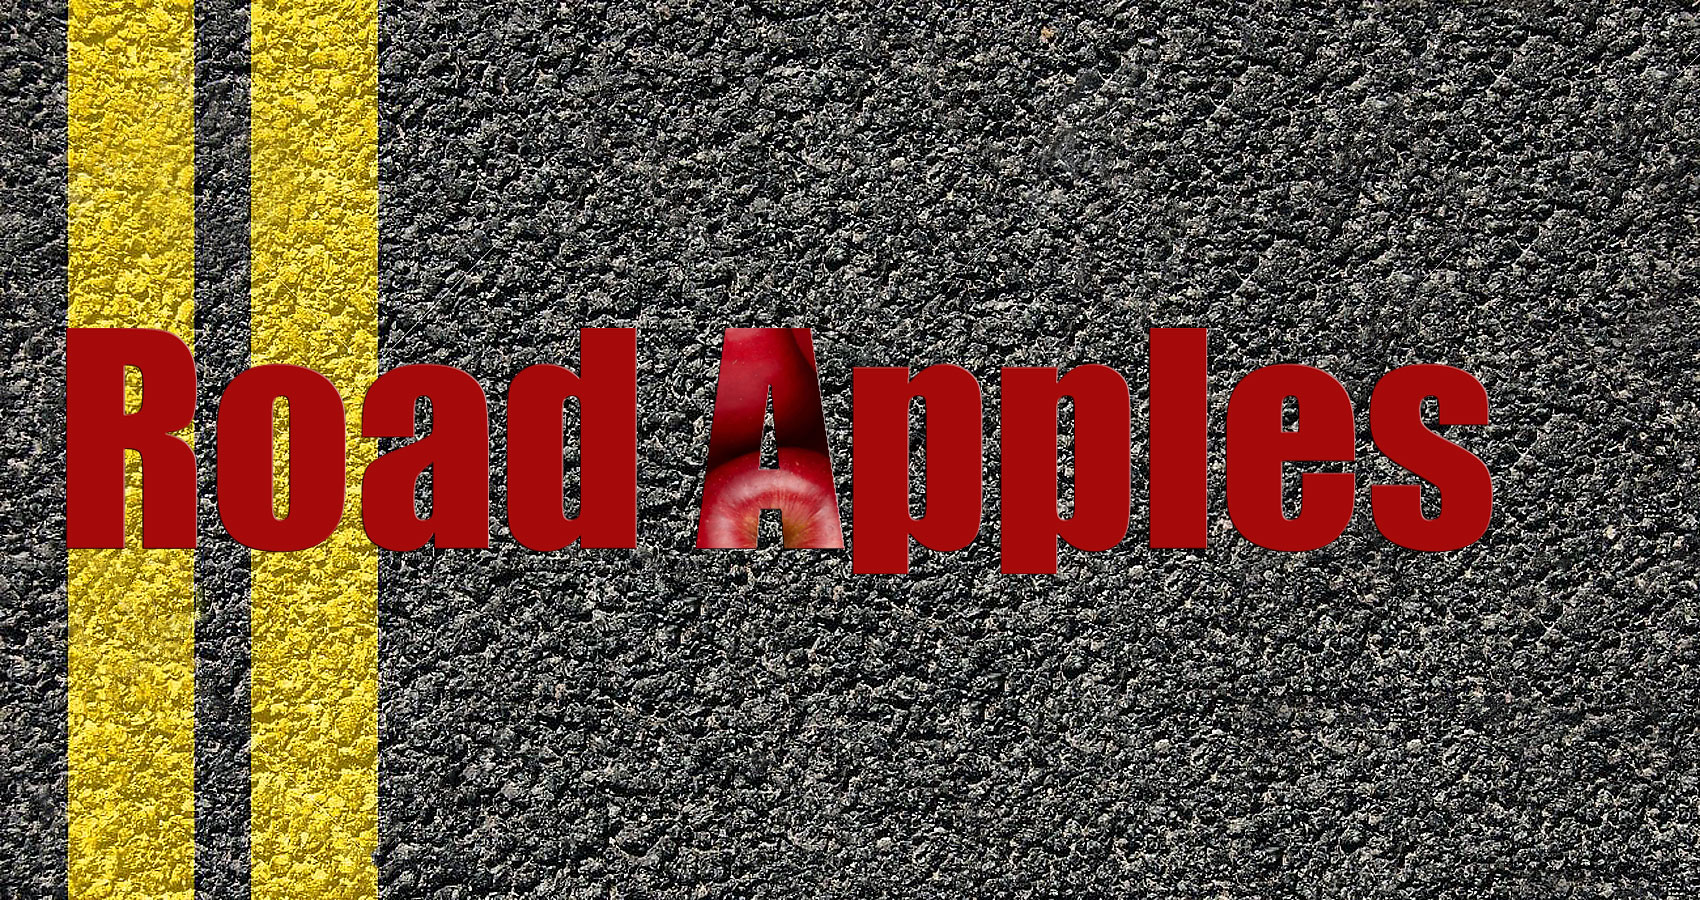 Road Apples written by Gavin Haycock at Spillwords.com